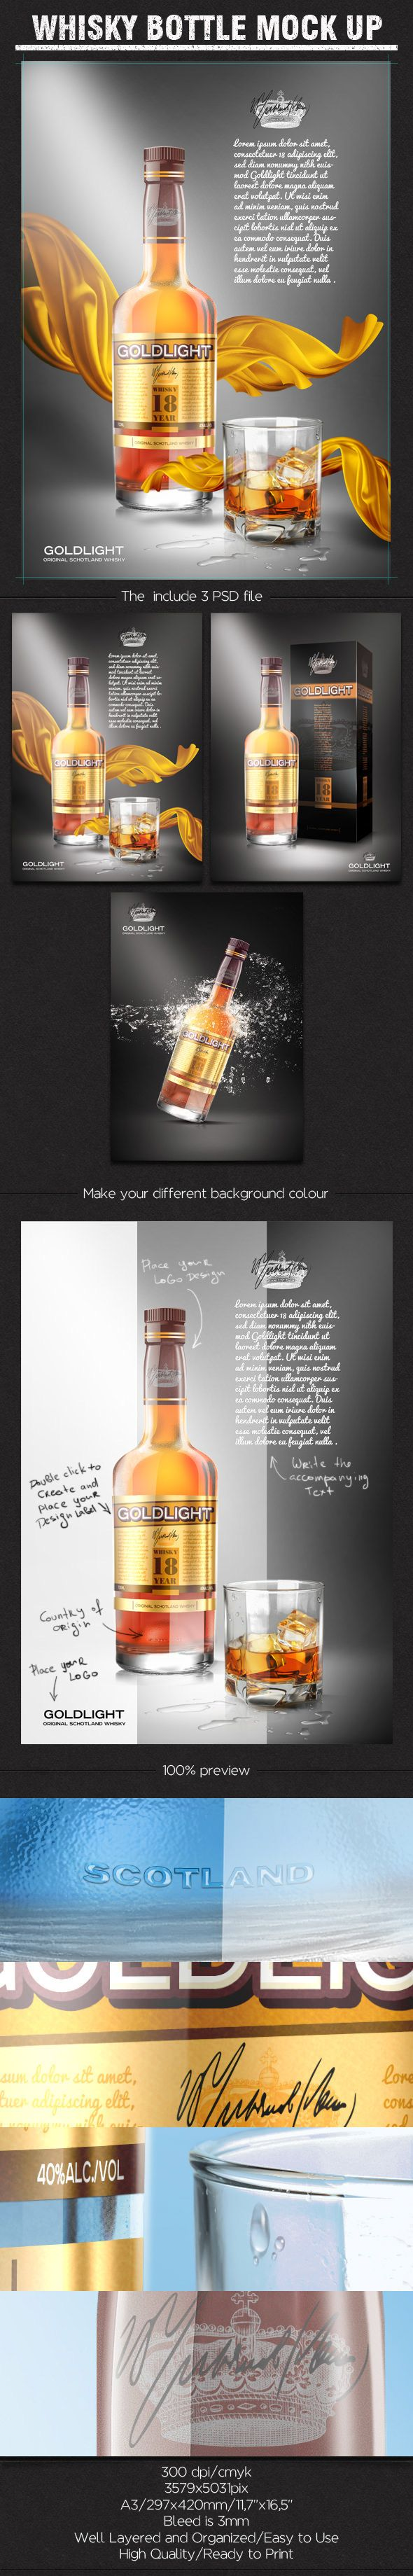 300 Dpi Cmyk3579x5031pixa3 297x420mm 11 7 X16 5 Bleed Is 3mmwell Layered And Organized Easy To Usehigh Quality Rea Bottle Mockup Whisky Bottle Packaging Mockup